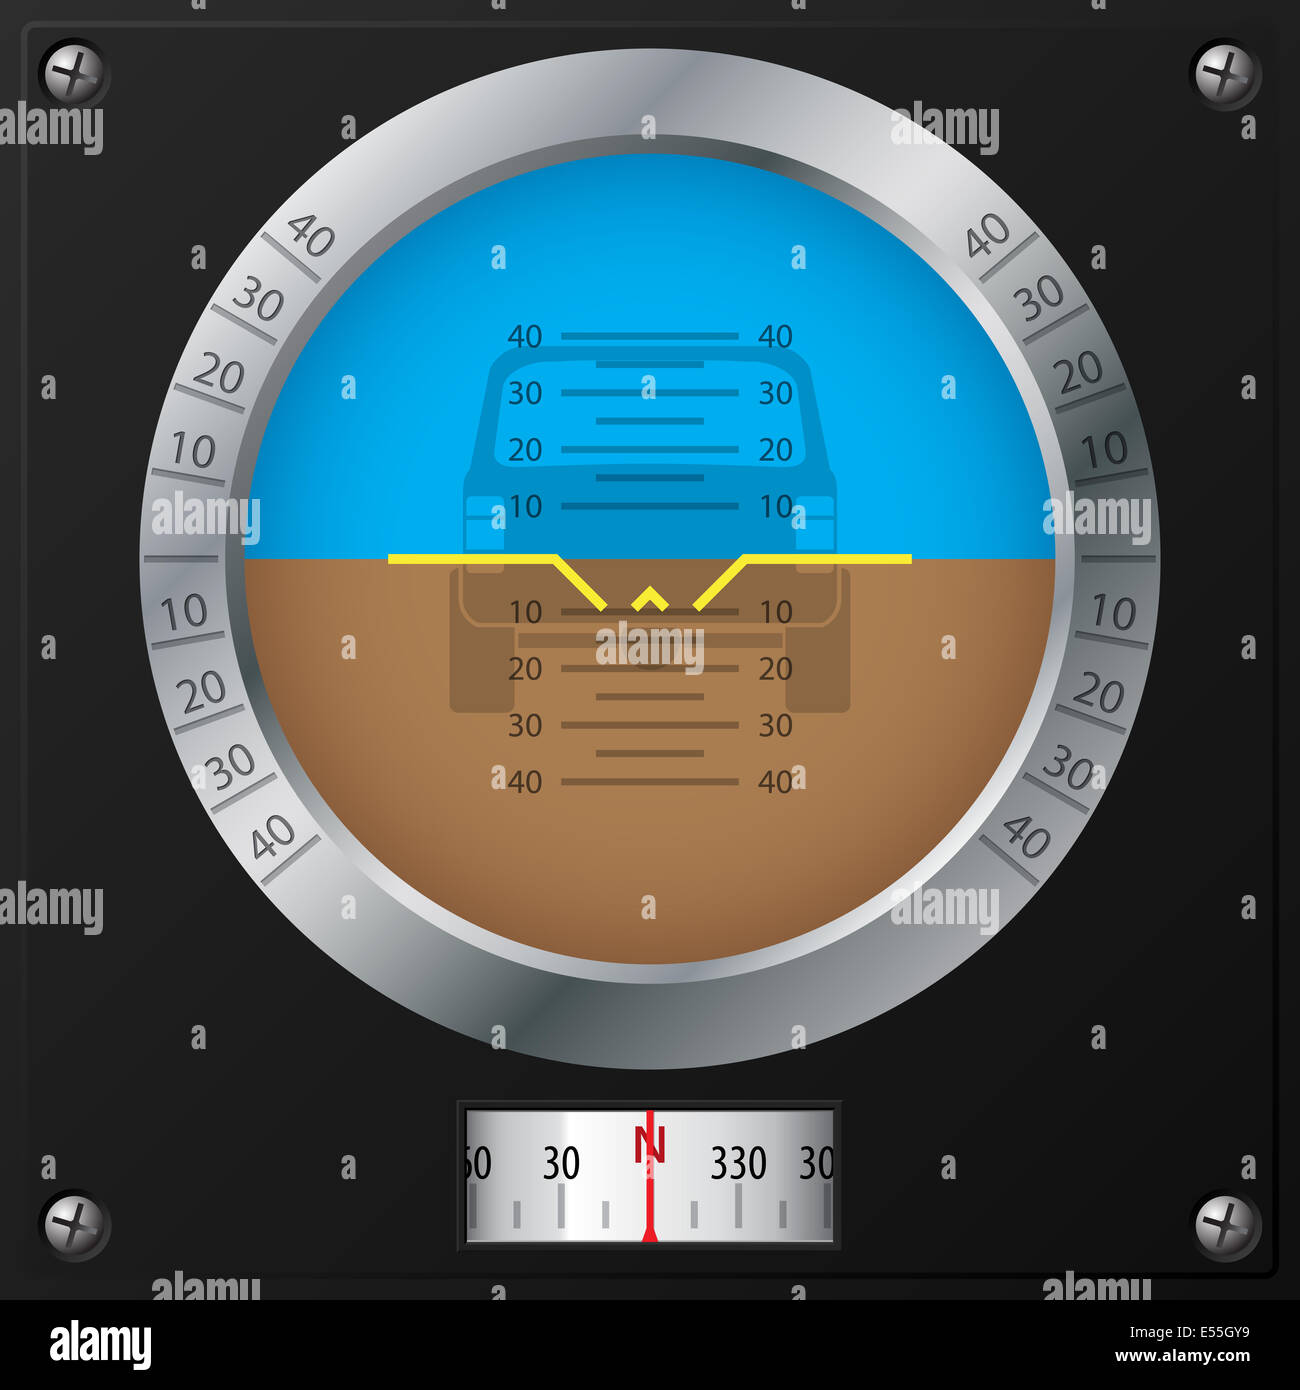 Attitude indicator design on screwed black plate for jeeps - Stock Image